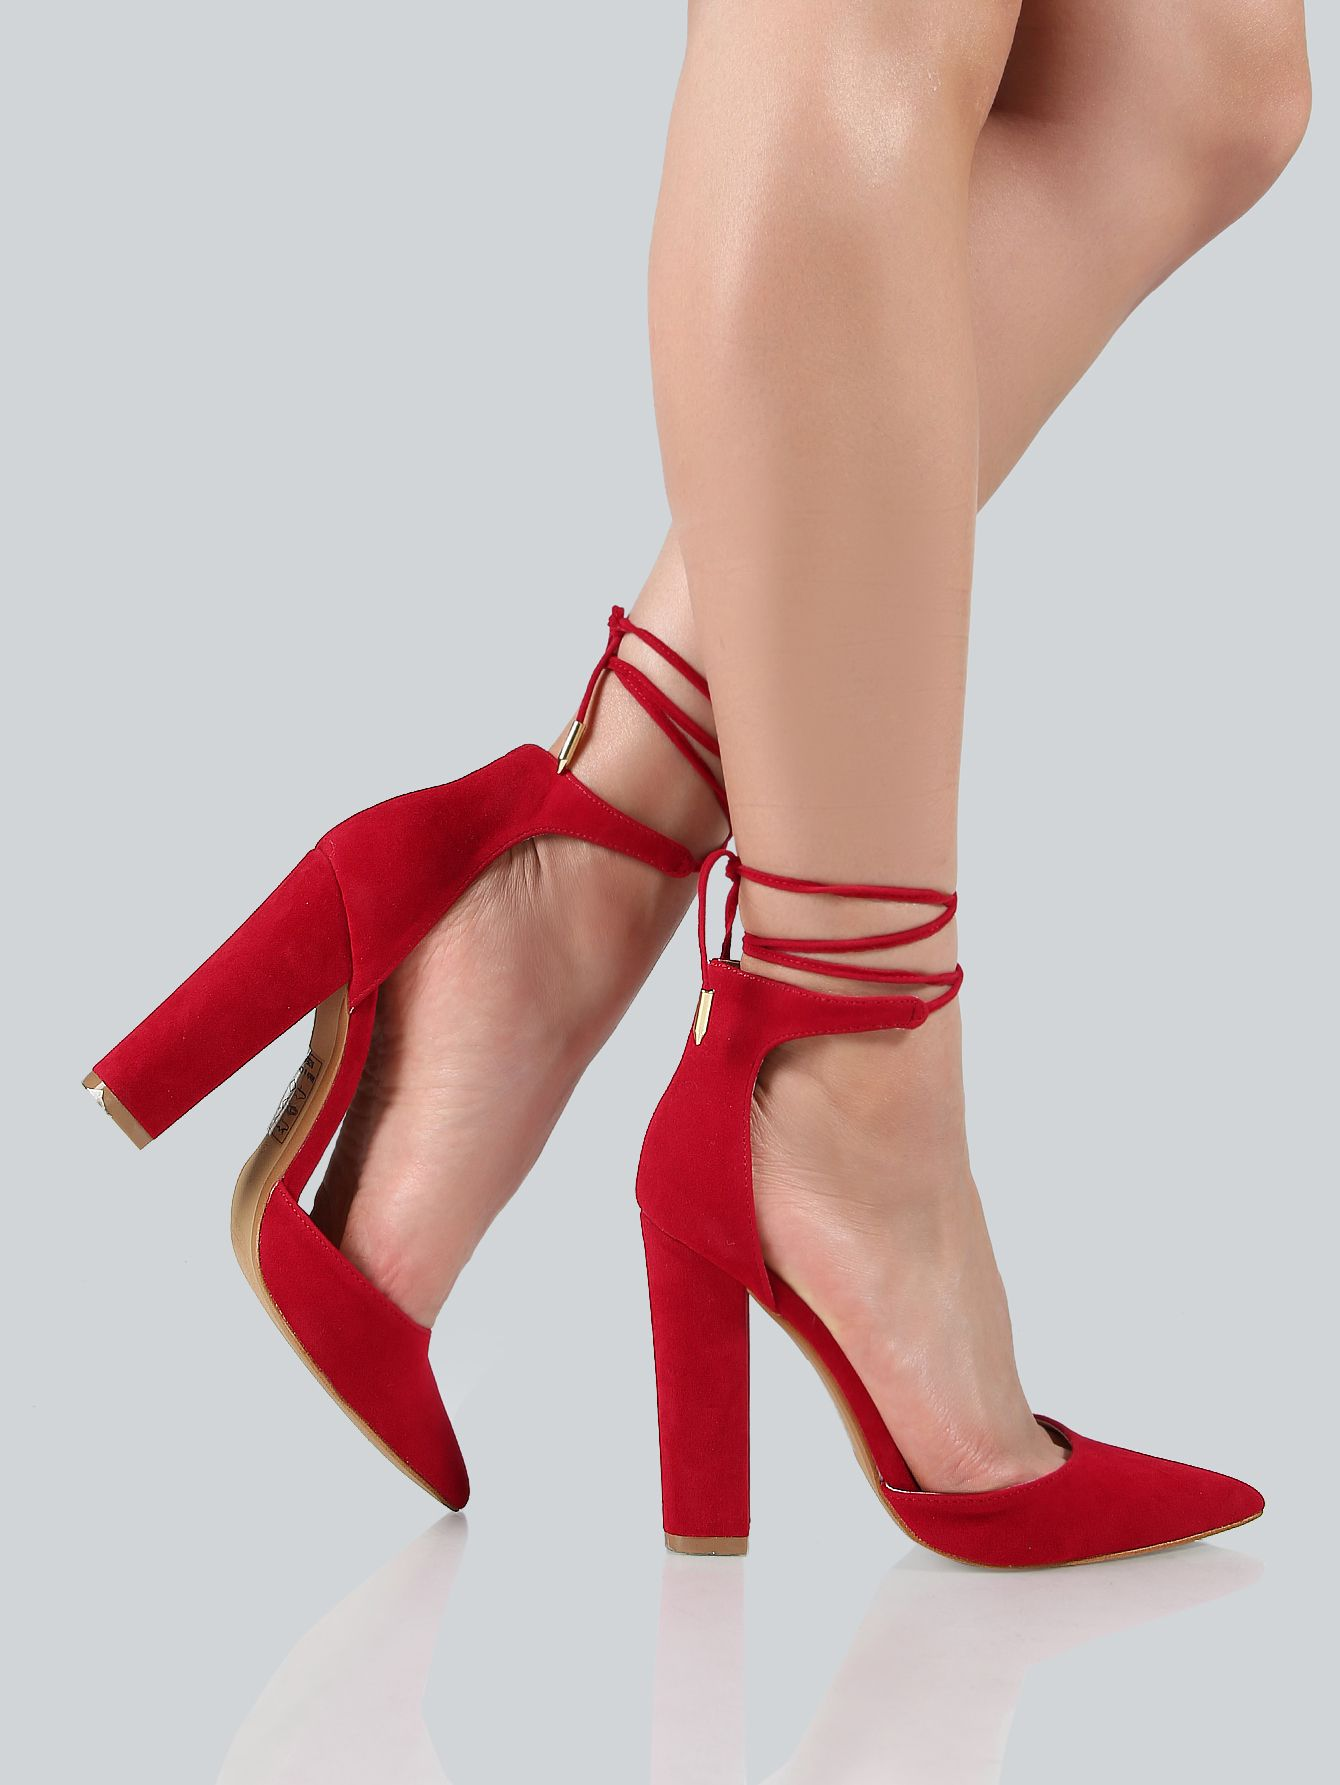 51495baacd5 Shop Ankle Wrap Closed Toe Heels RED online. SheIn offers Ankle Wrap Closed  Toe Heels RED   more to fit your fashionable needs.